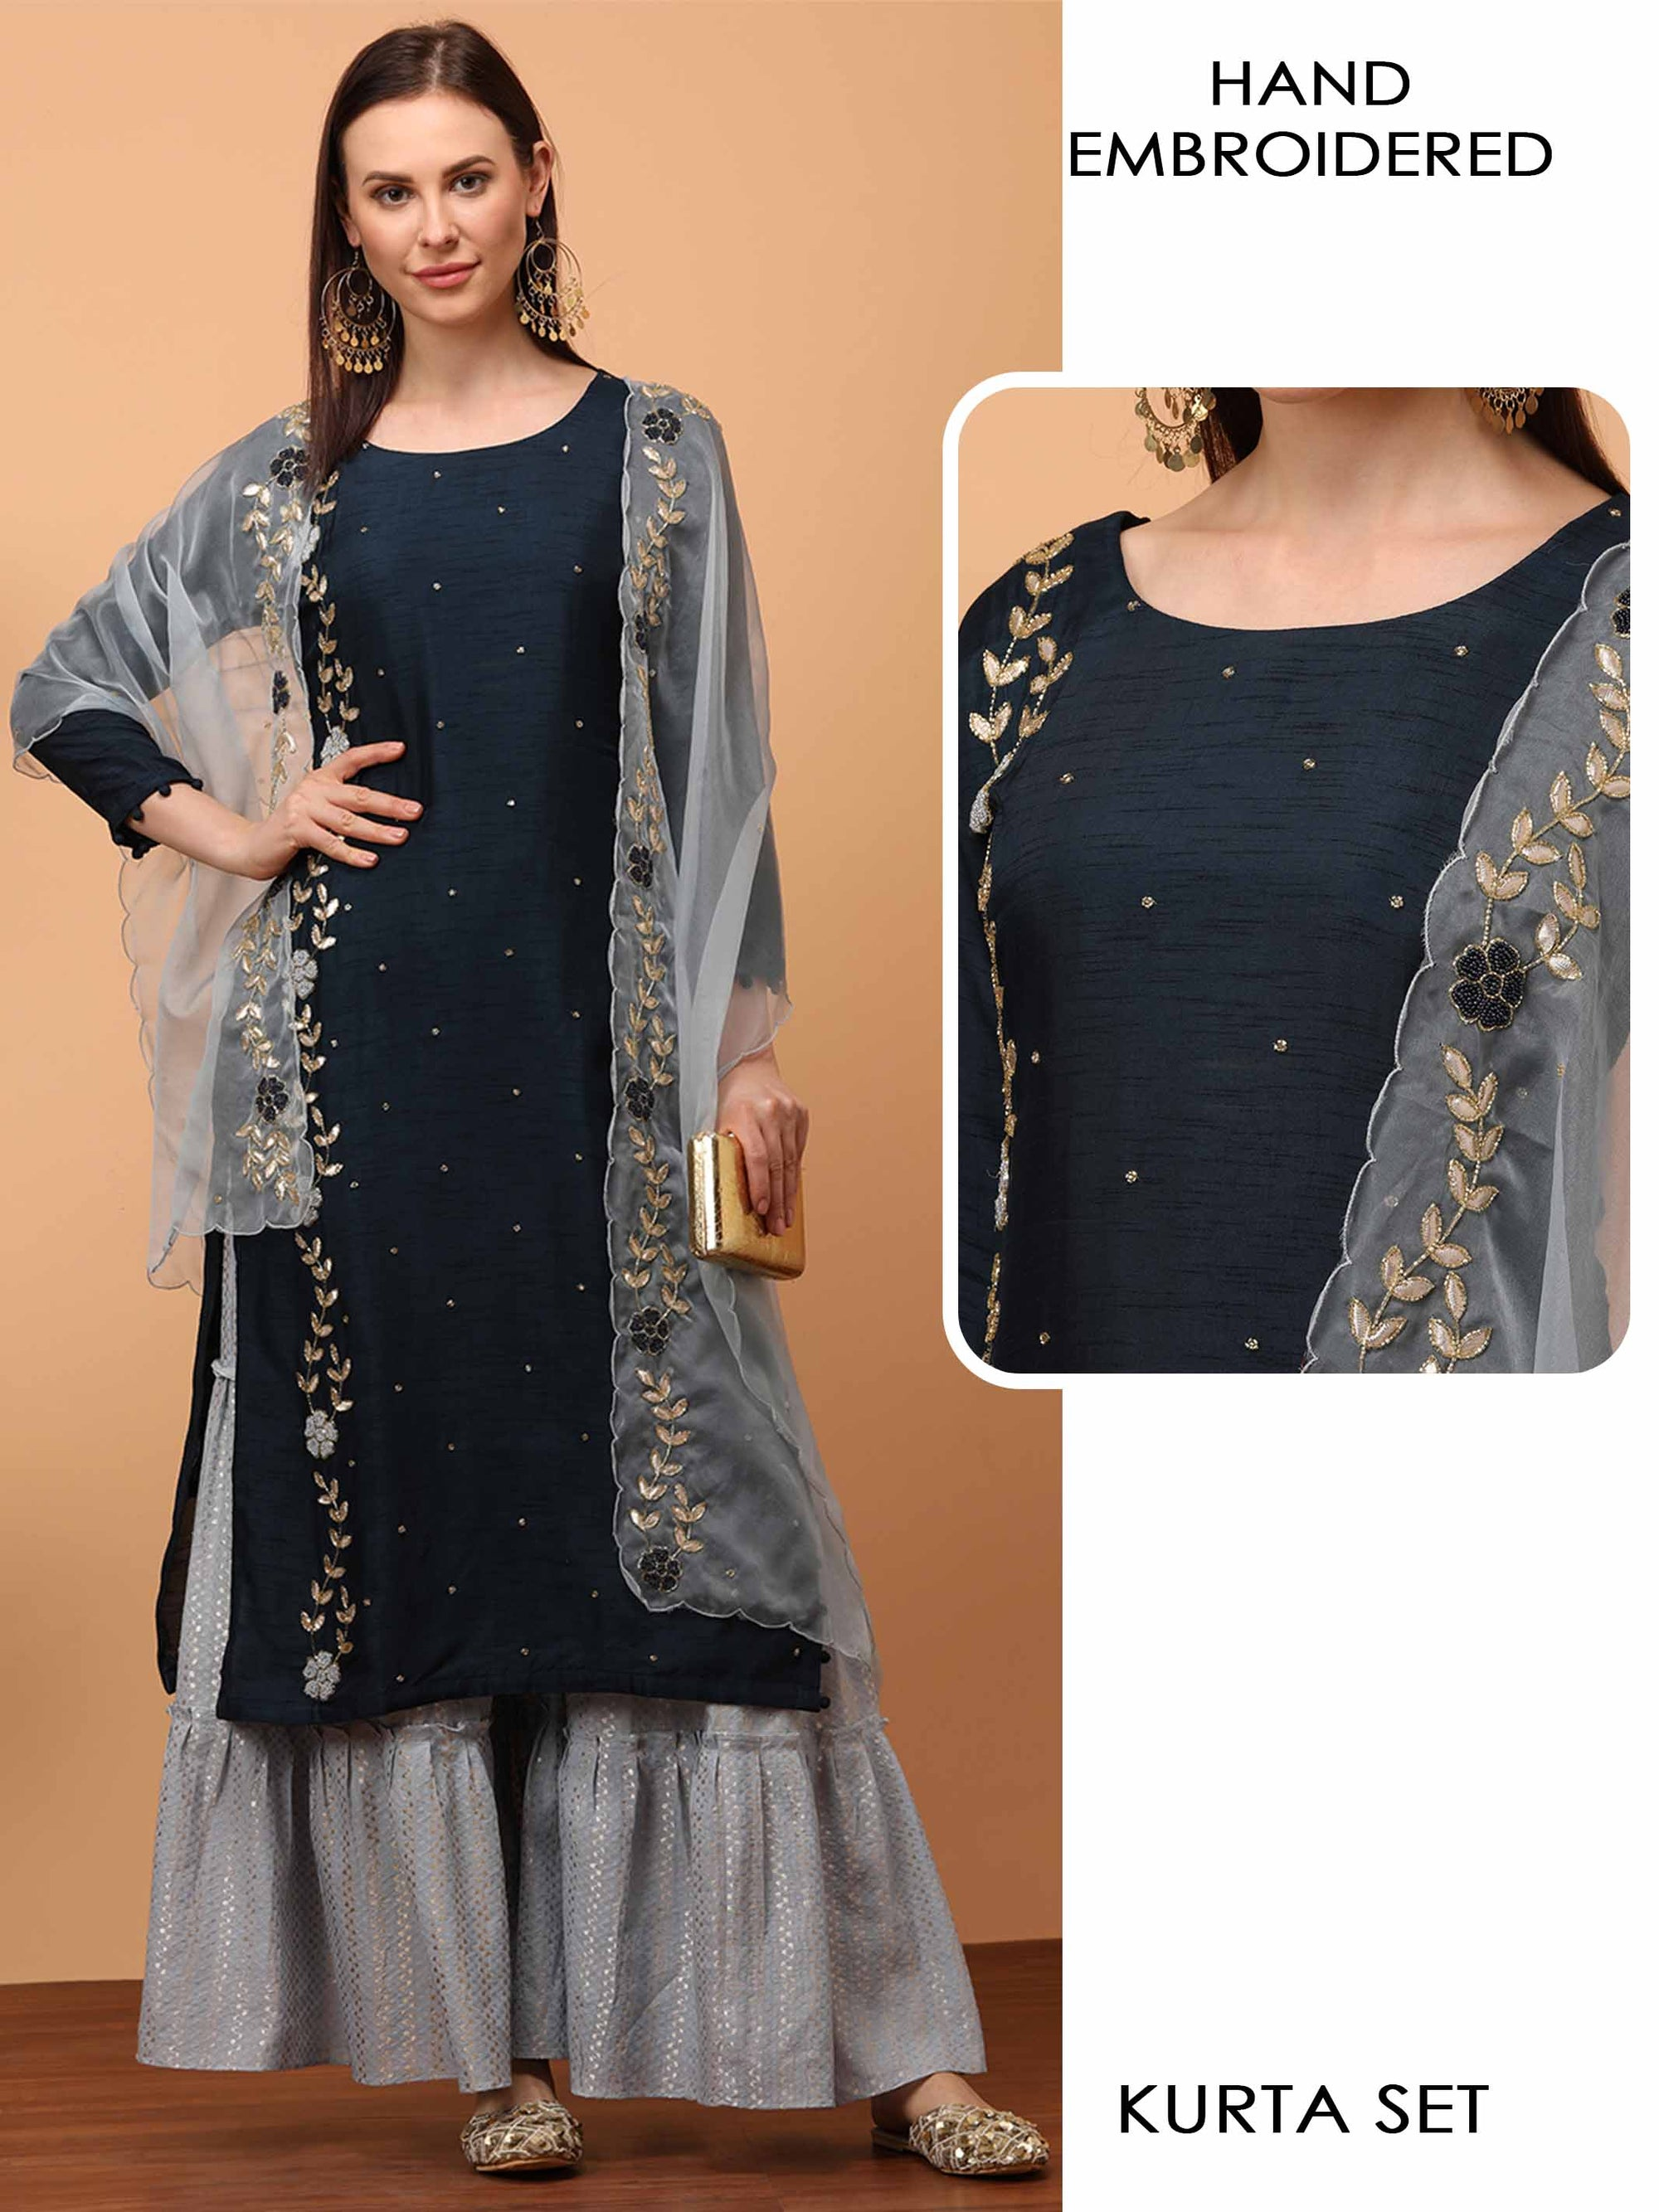 Hand Embroidered Straight Kurta with Woven Design Sharara with Hand Embroidered Scallop Dupatta - Navy Blue